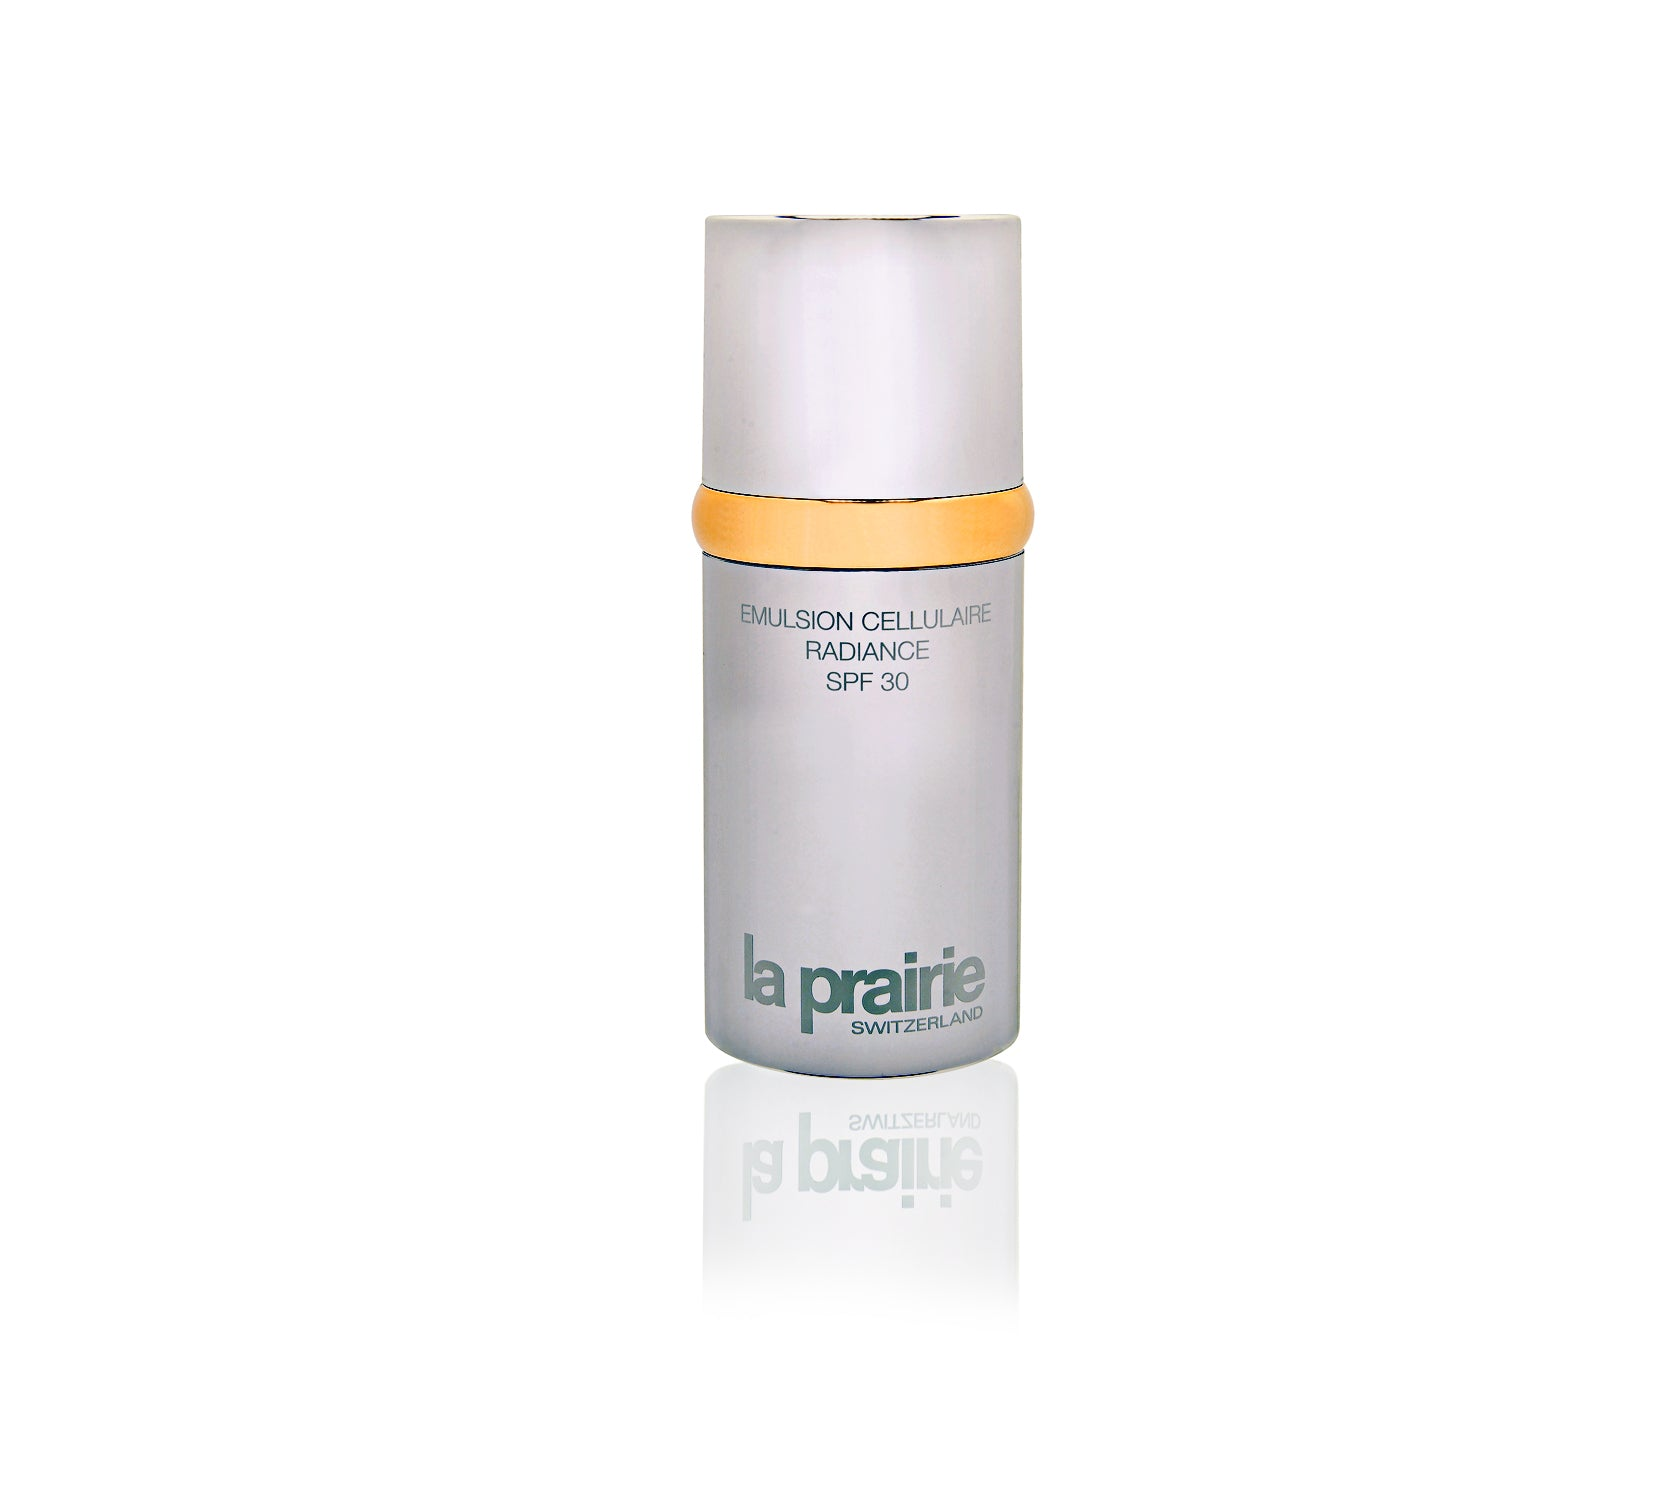 cellular-radiance-emulsion-spf30